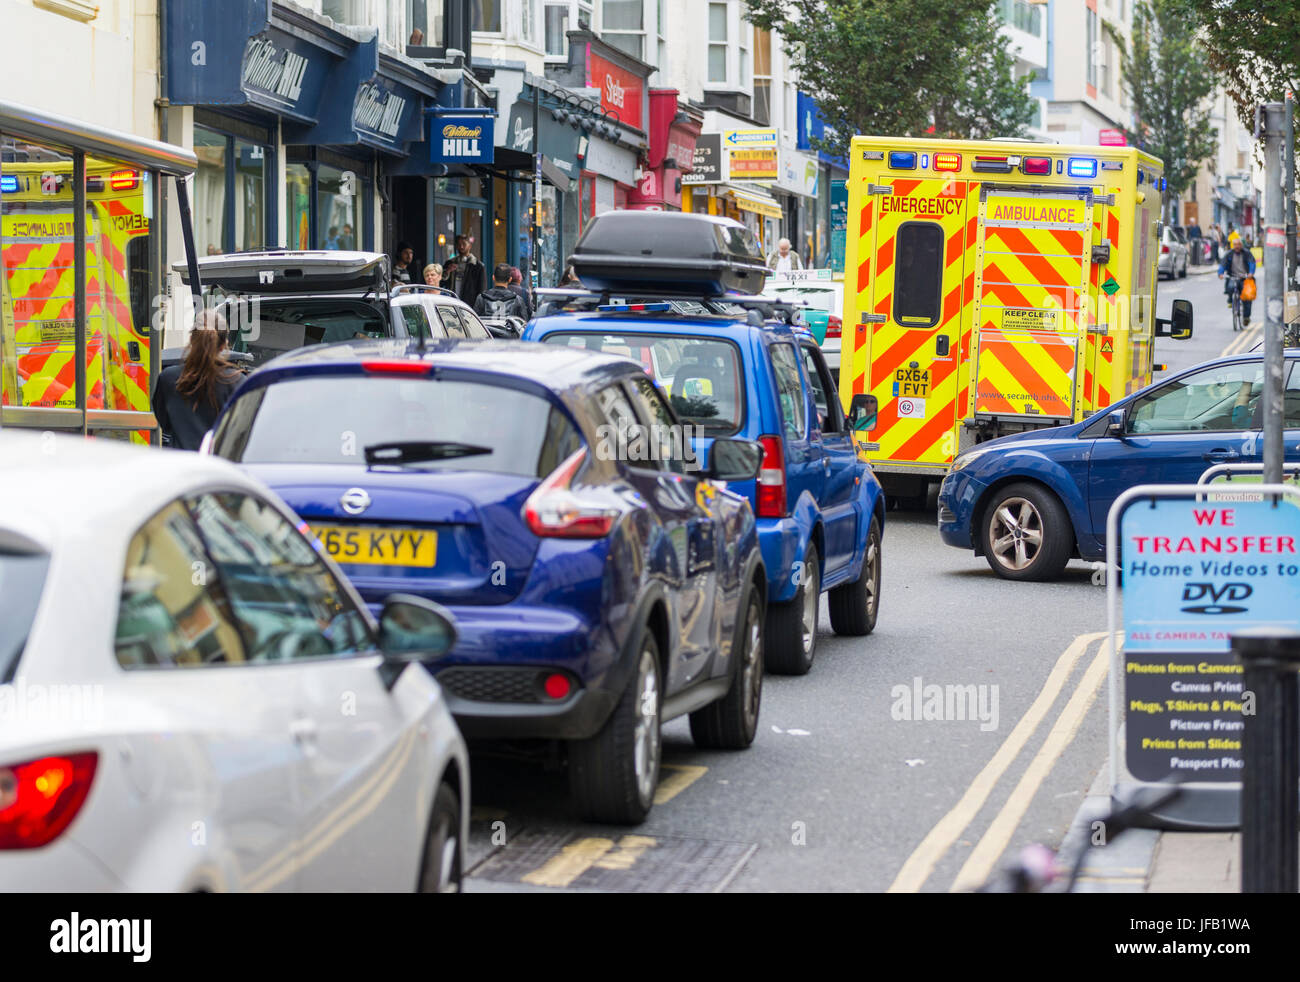 Ambulance with blue lights on parked in a road blocking traffic in the UK. Stock Photo